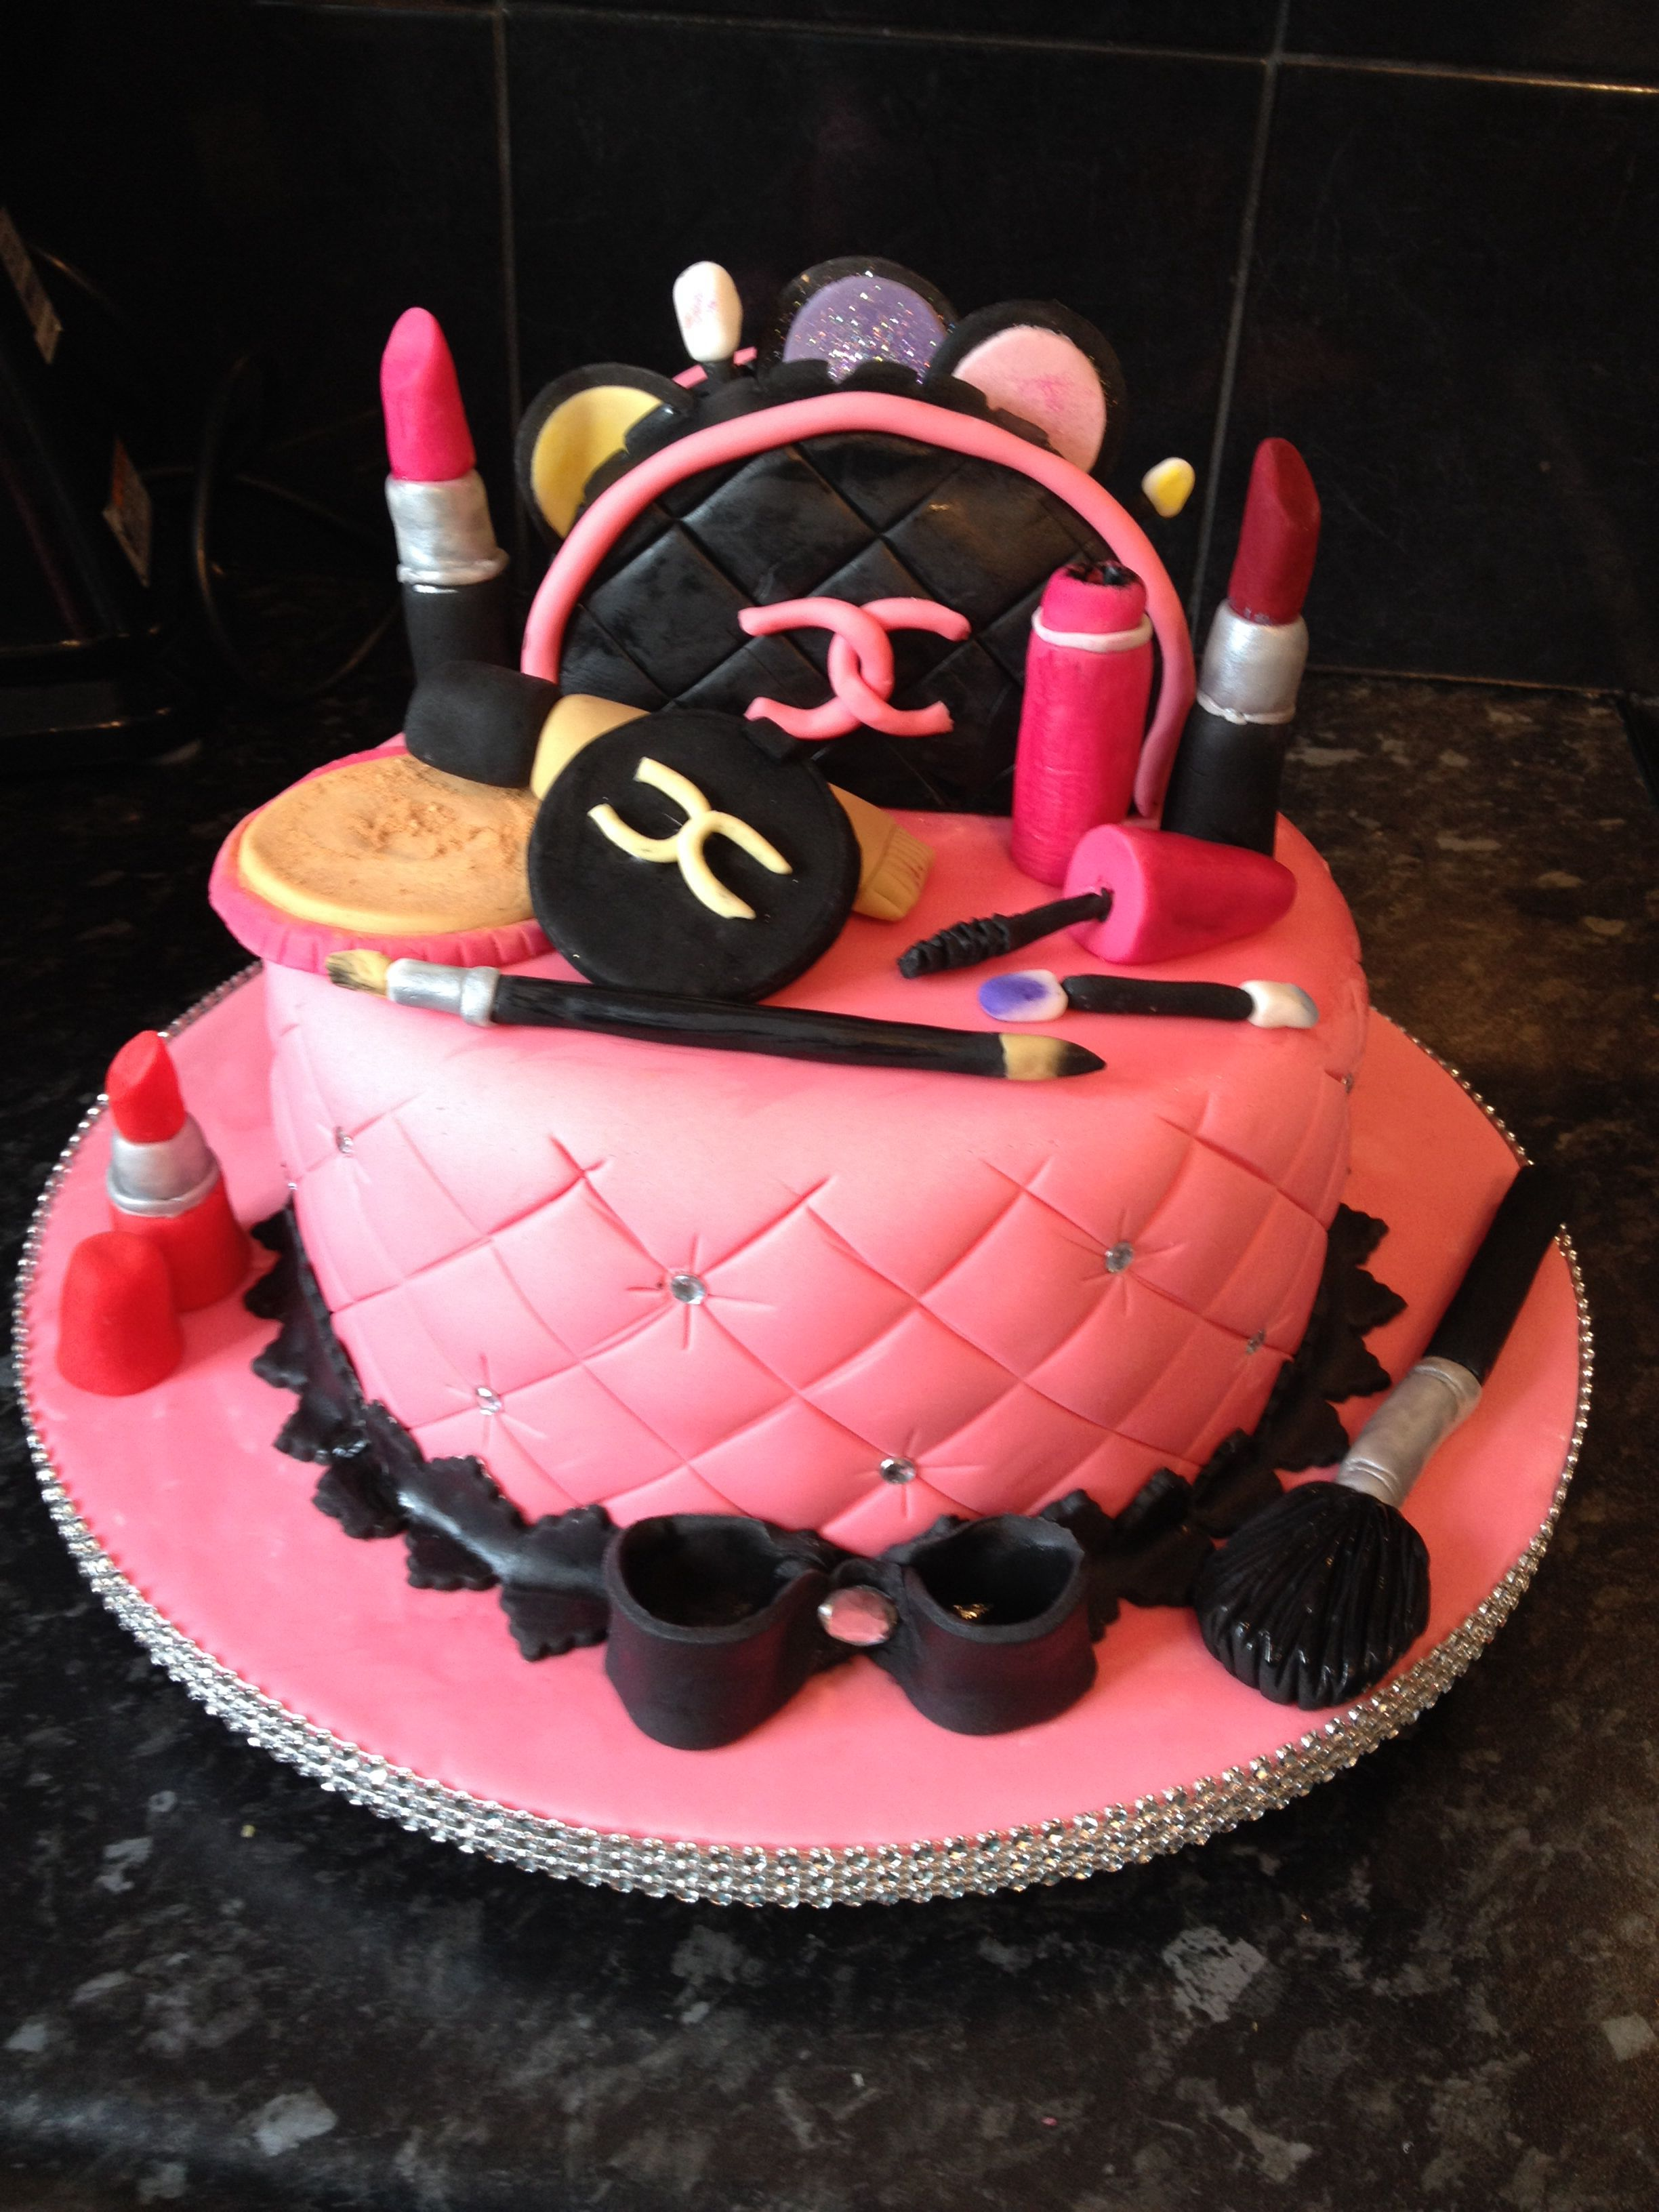 My Daughters 14th Birthday Cake Made By Me With Help From Daughter X Happy Babe Xx